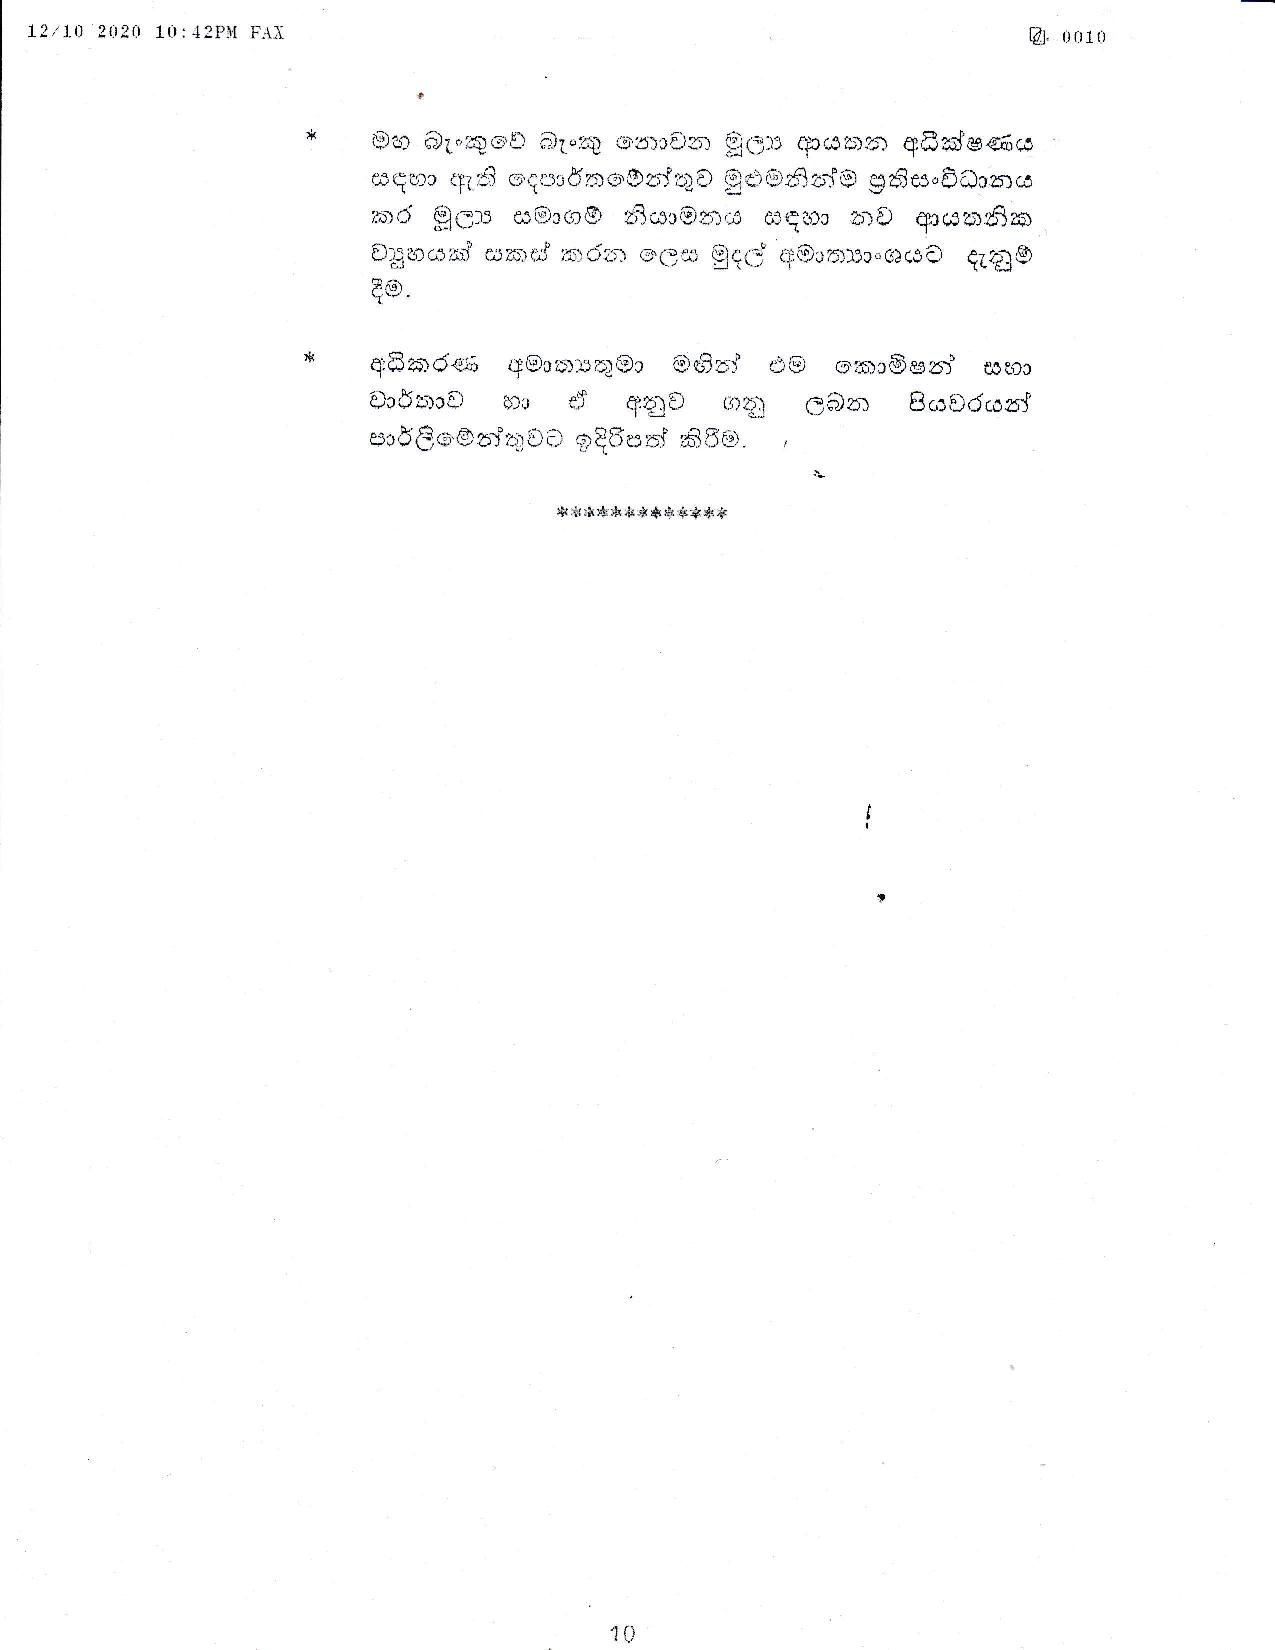 Cabinet Decision on 12.10.2020 page 010